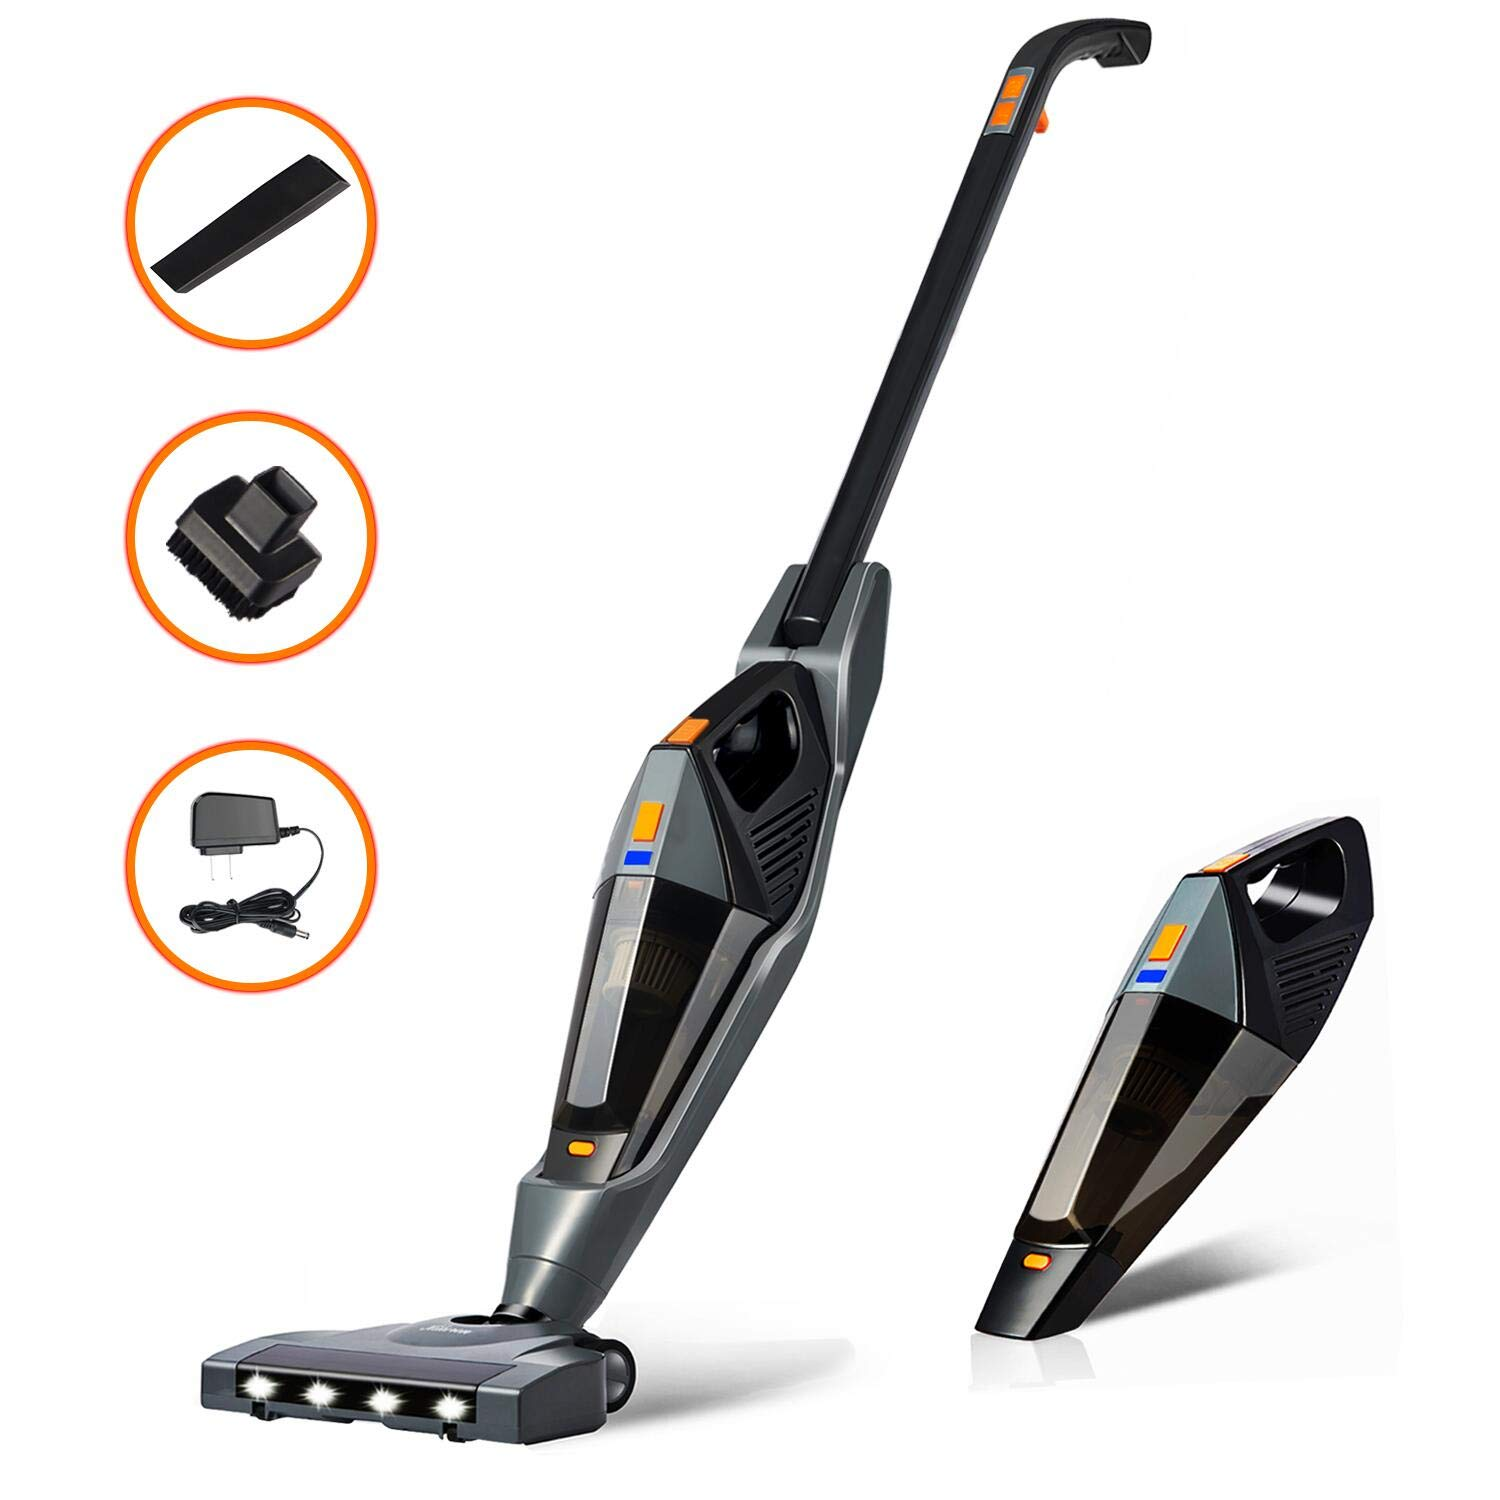 Cordless Vacuum, Hikeren 12000 PA Stick Vacuum Cleaner, 2 in 1 Lightweight Rechargeable Bagless Stick and Handheld Vacuum with Wall Mount for Carpet Hardwood Floor Pet Hair